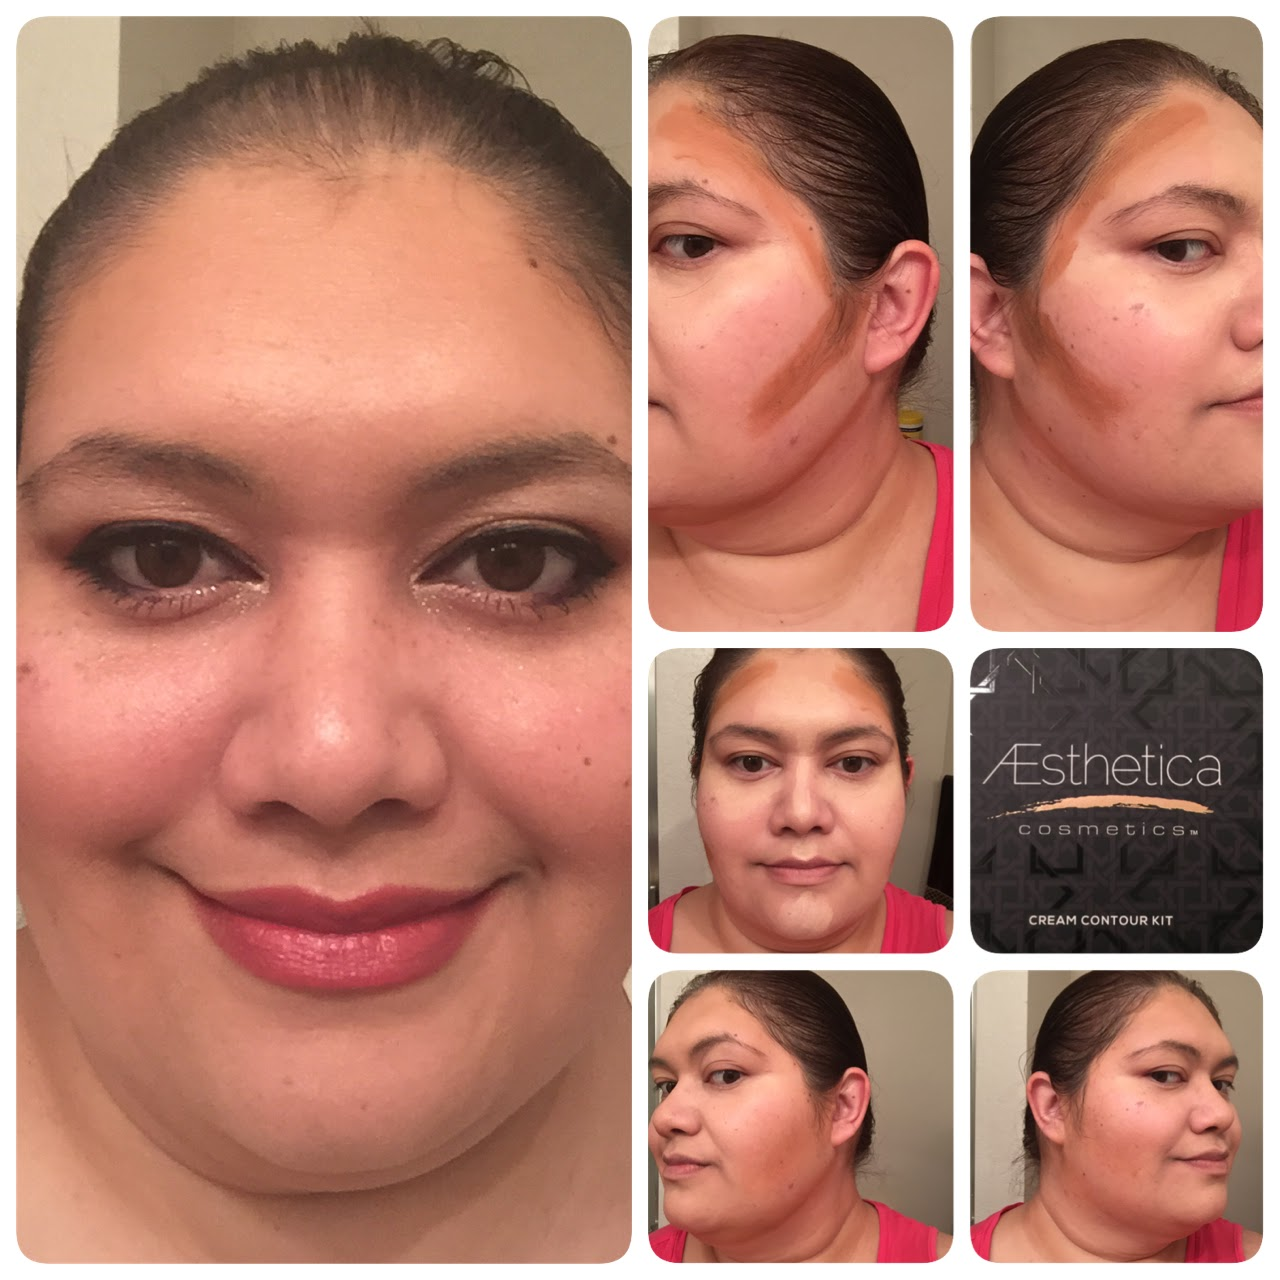 I Know It's Not A Very Dramatic Contour But This Kit Was Really Nice It  Was Super Easy To Use, Blended Smoothly And Looked So Natural, I  Appreciated Not